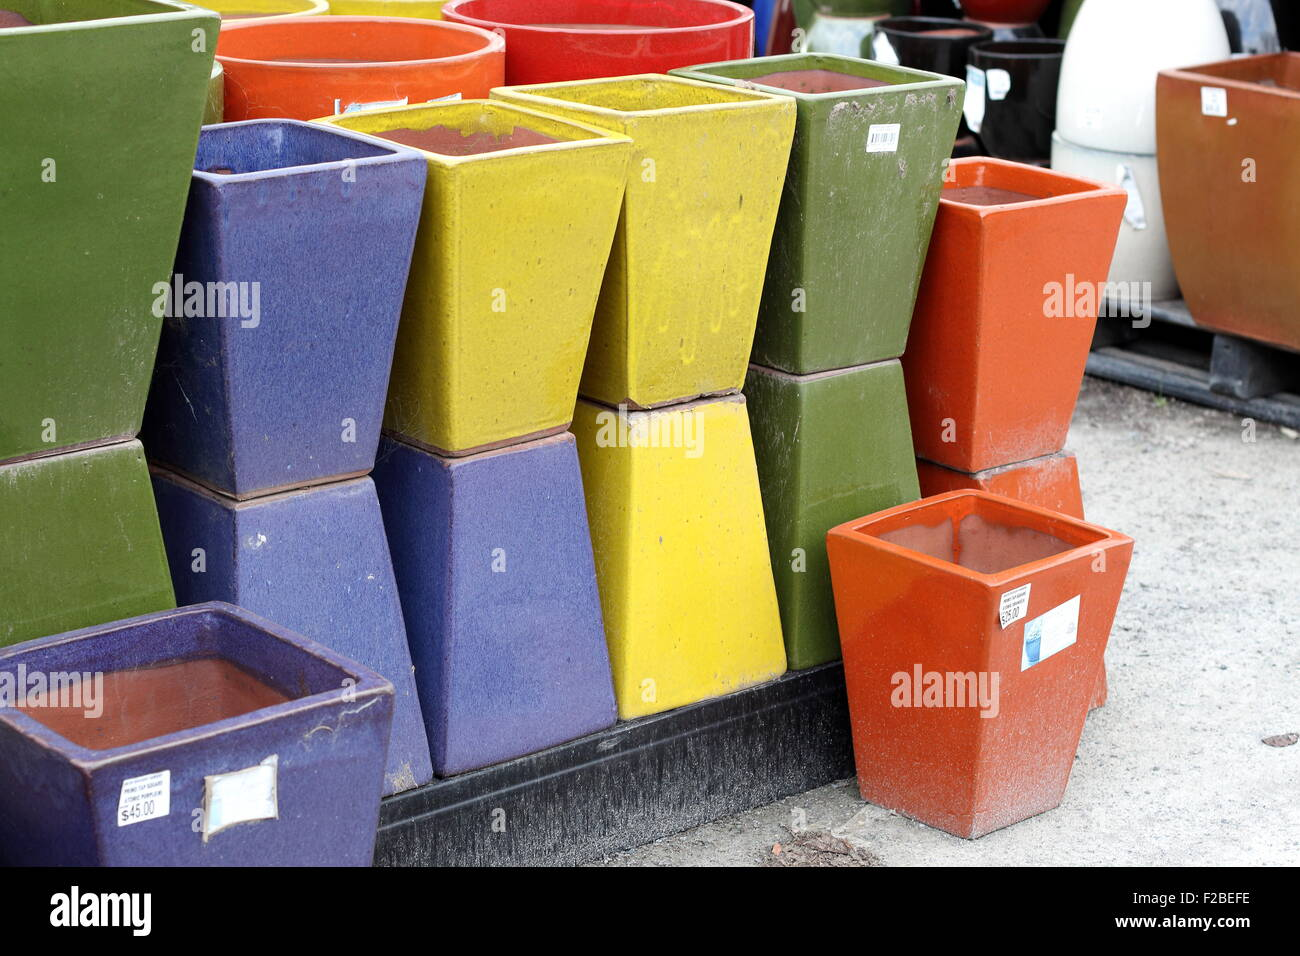 Terracotta Colors Stock Photos & Terracotta Colors Stock Images - Alamy